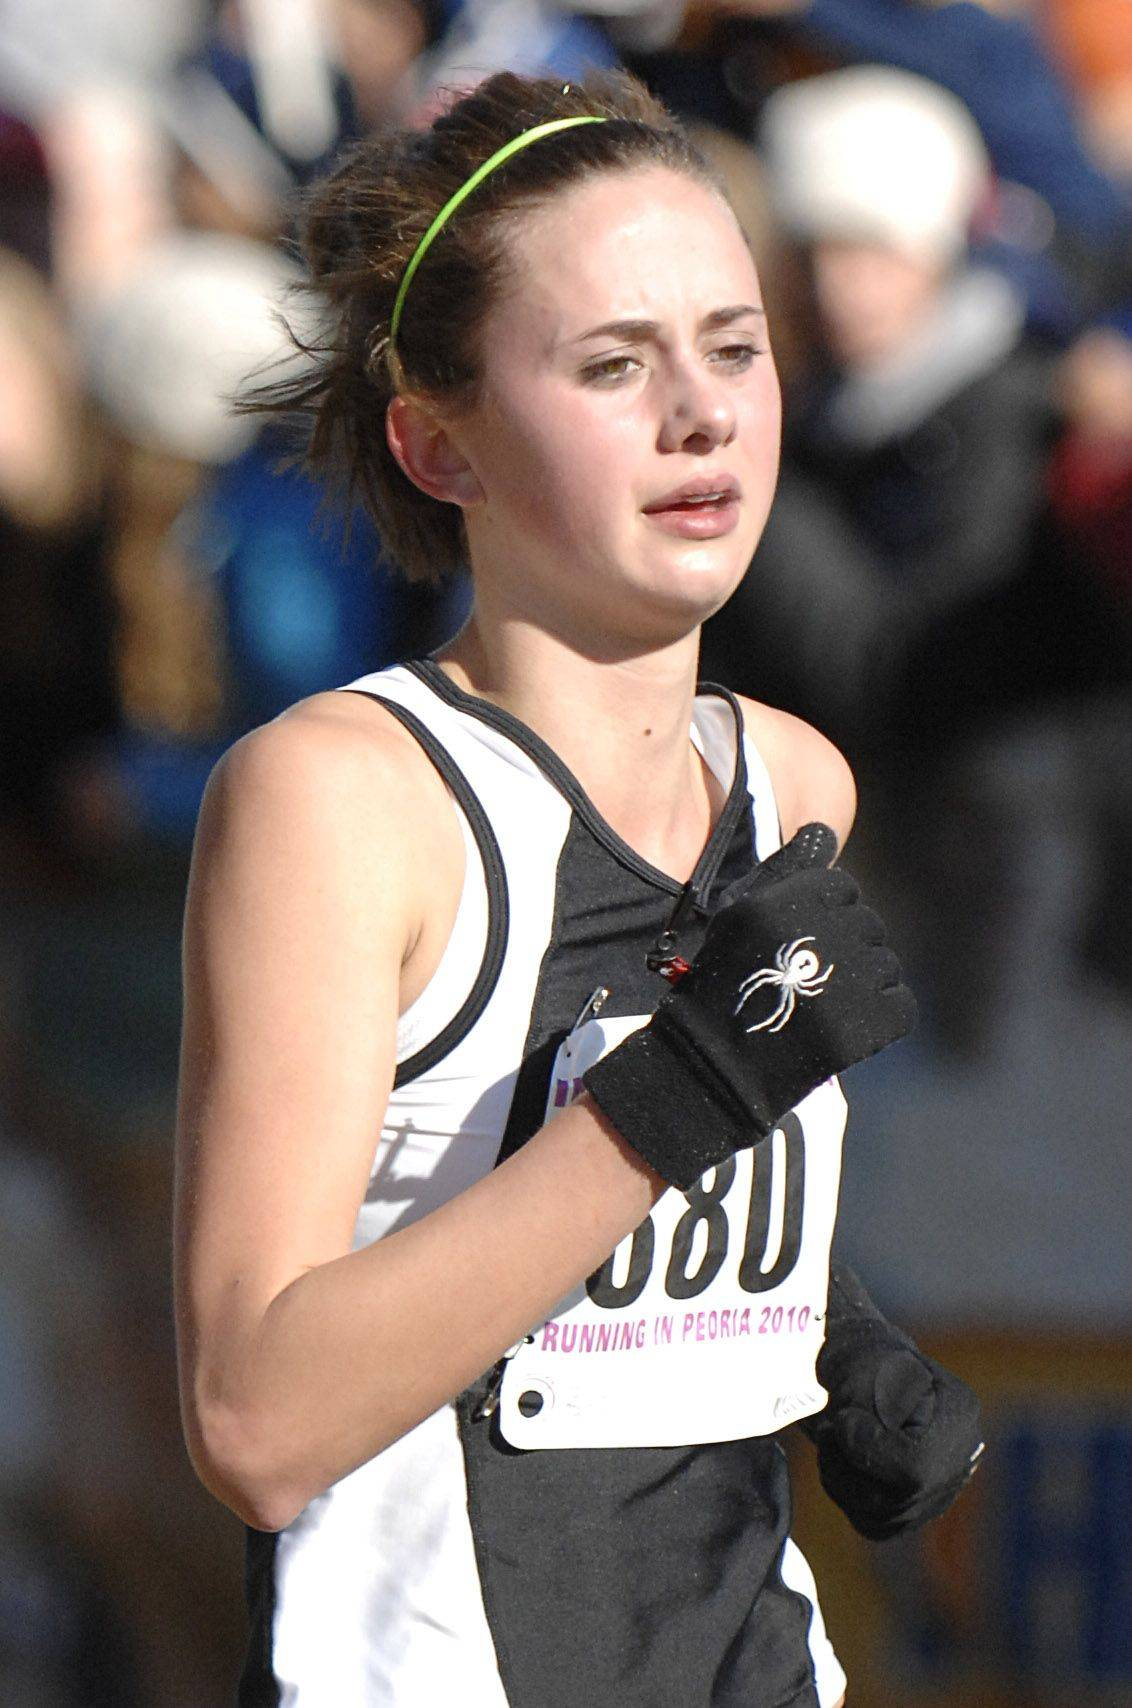 Kaneland's Jen Howland nears the 2A class finish line at the state cross country meet at Detweiller Park in Peoria on Saturday, November 6.